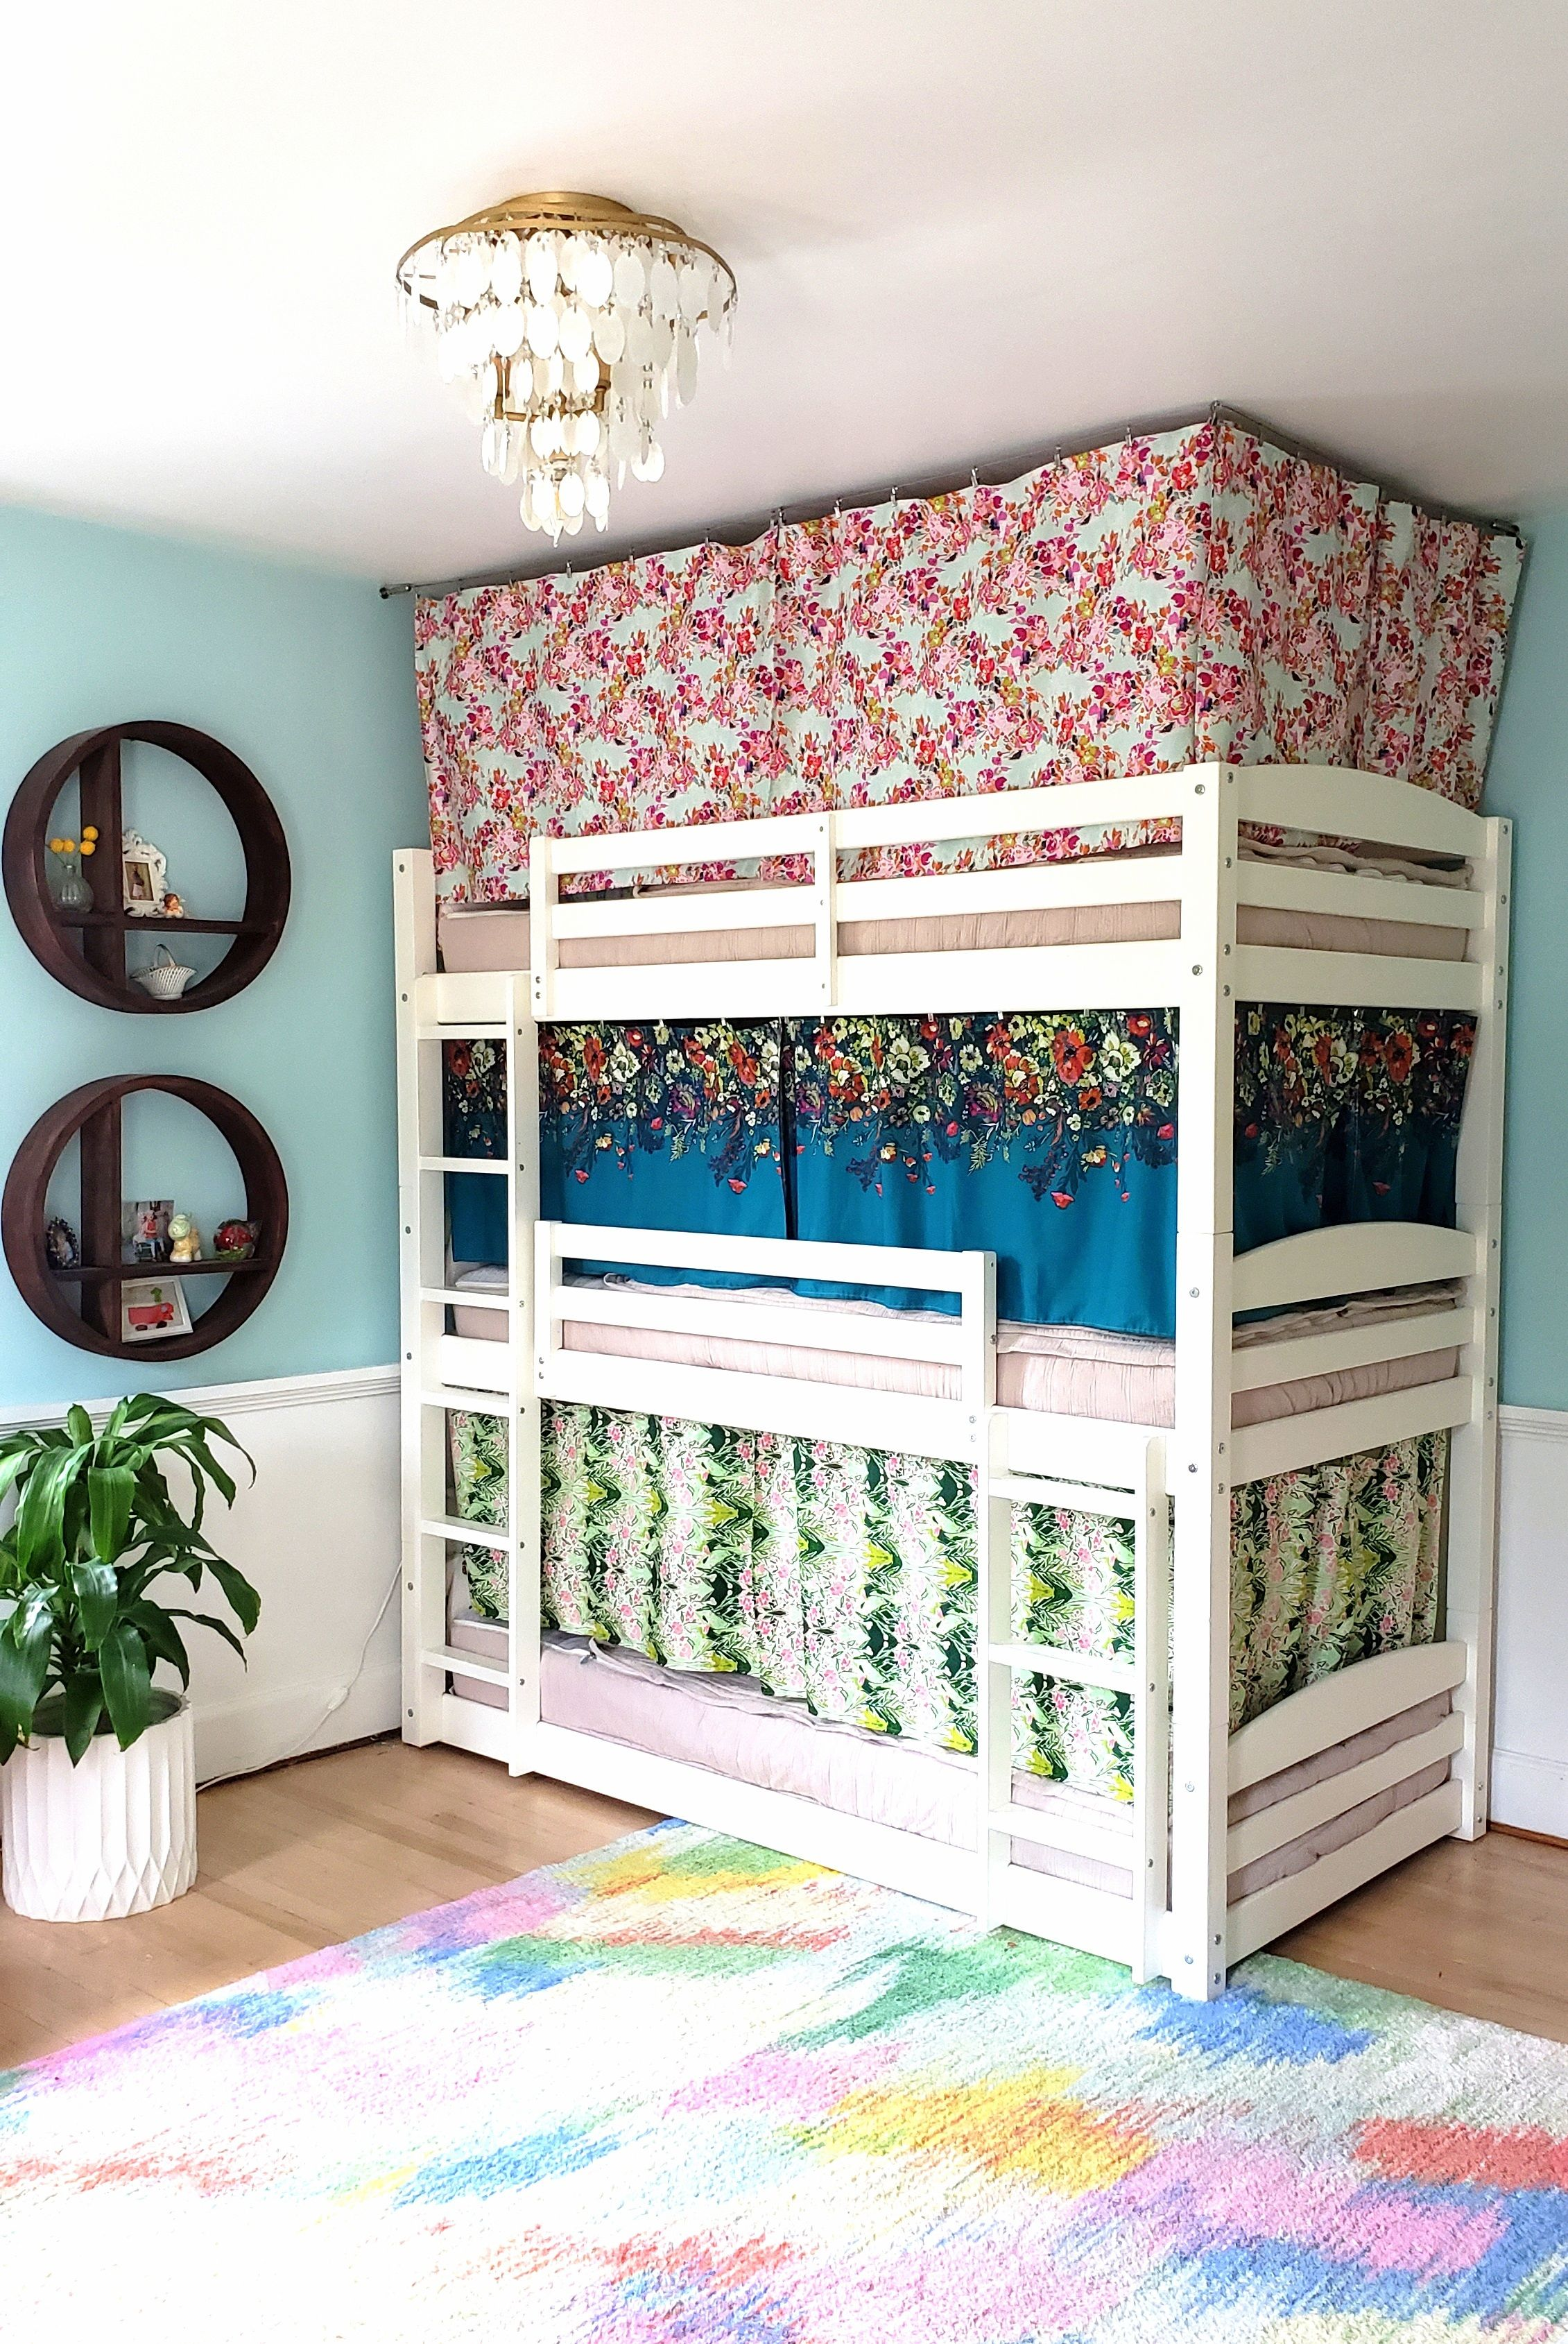 Bunk Bed Curtains Howto Tutorial {Reality Daydream